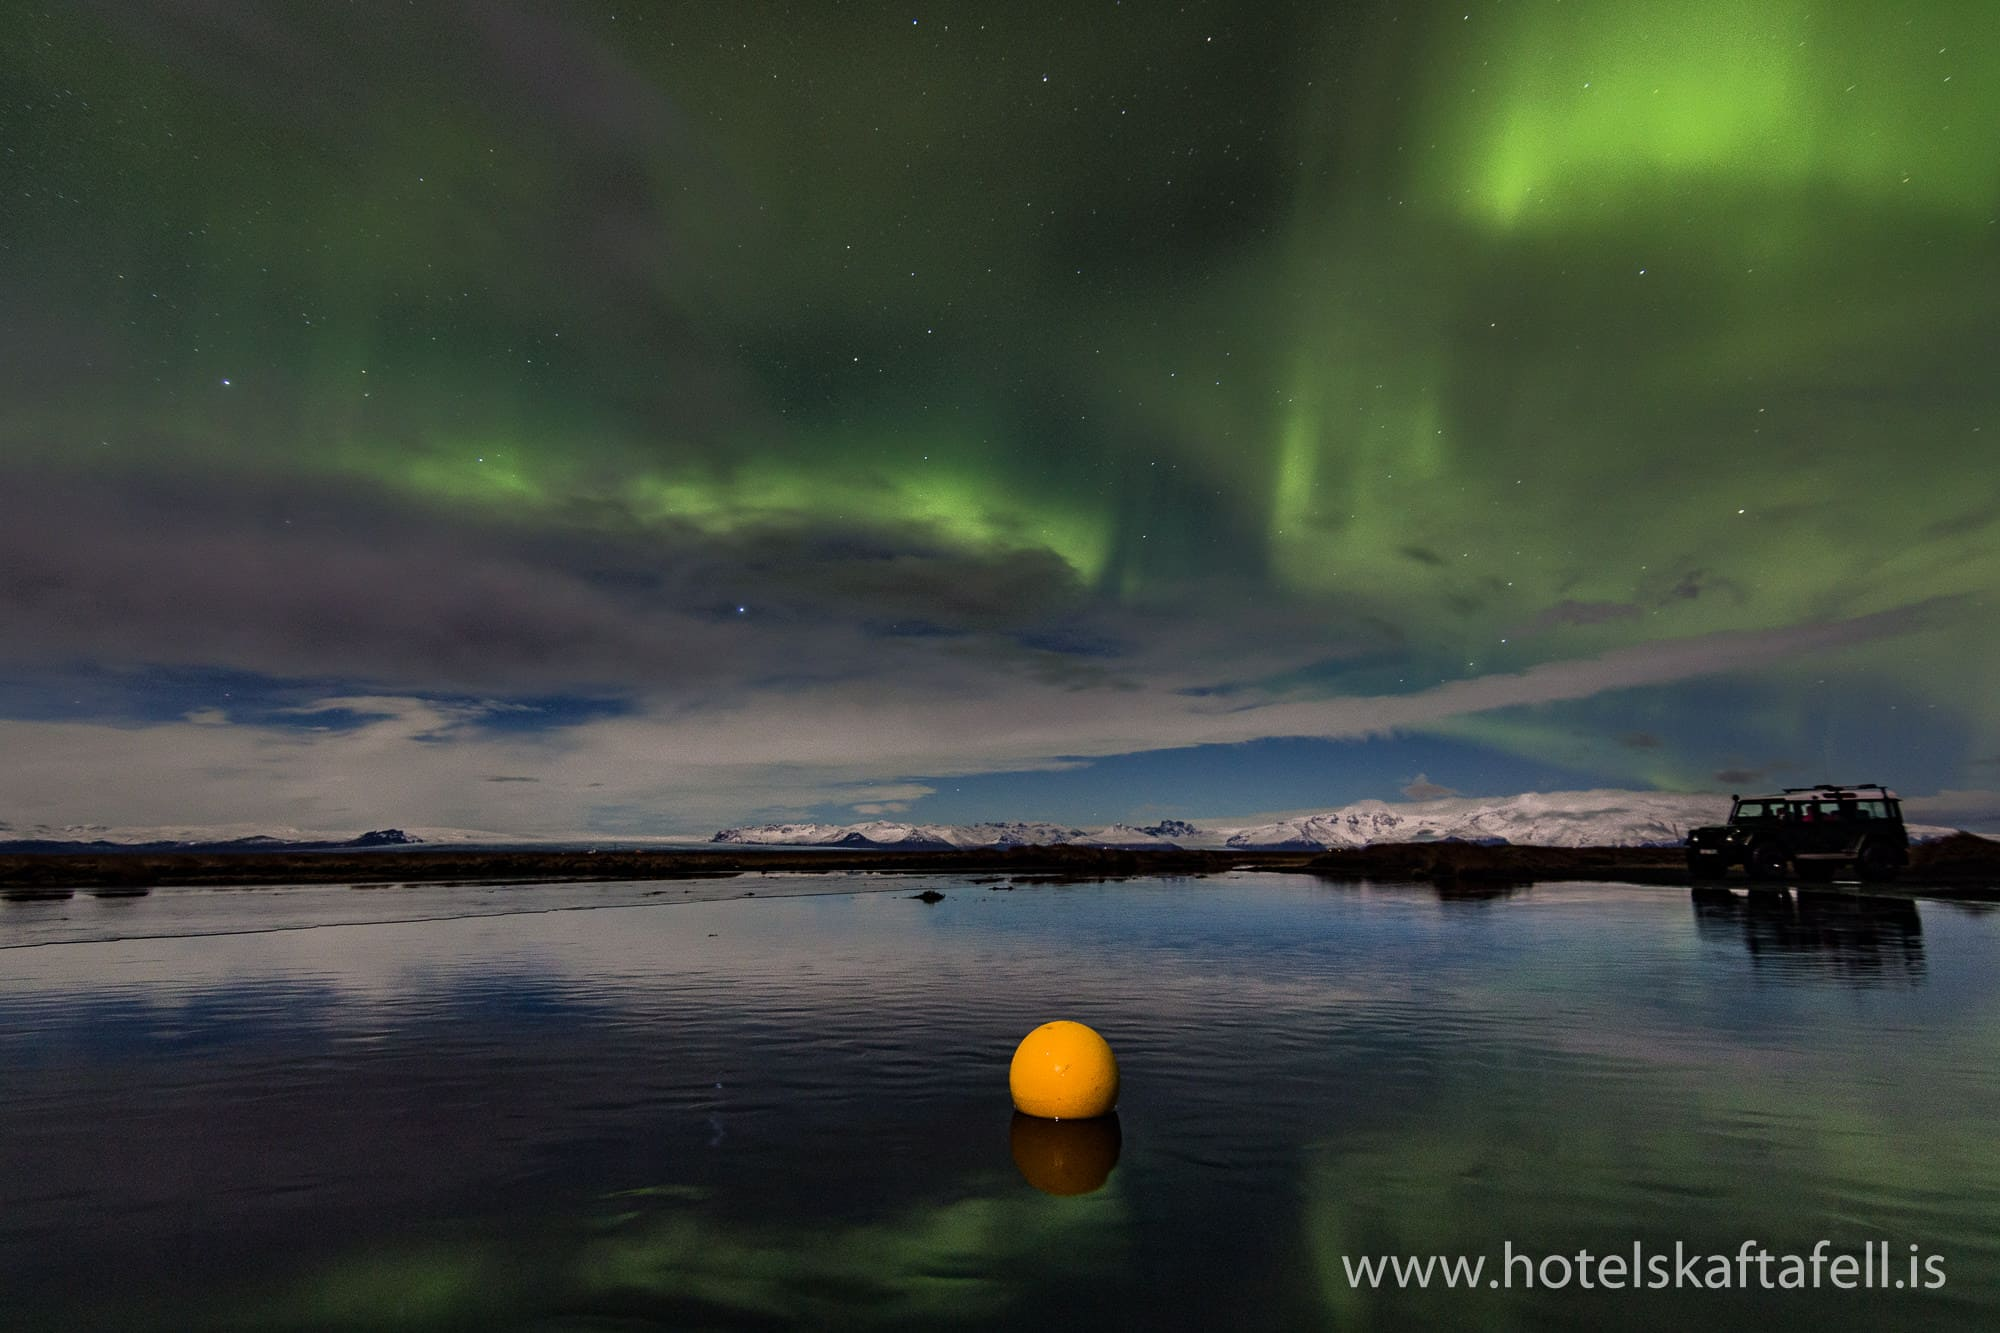 Photo of Northern Lights (Aurora borealis) taken from Hotel Skaftafell